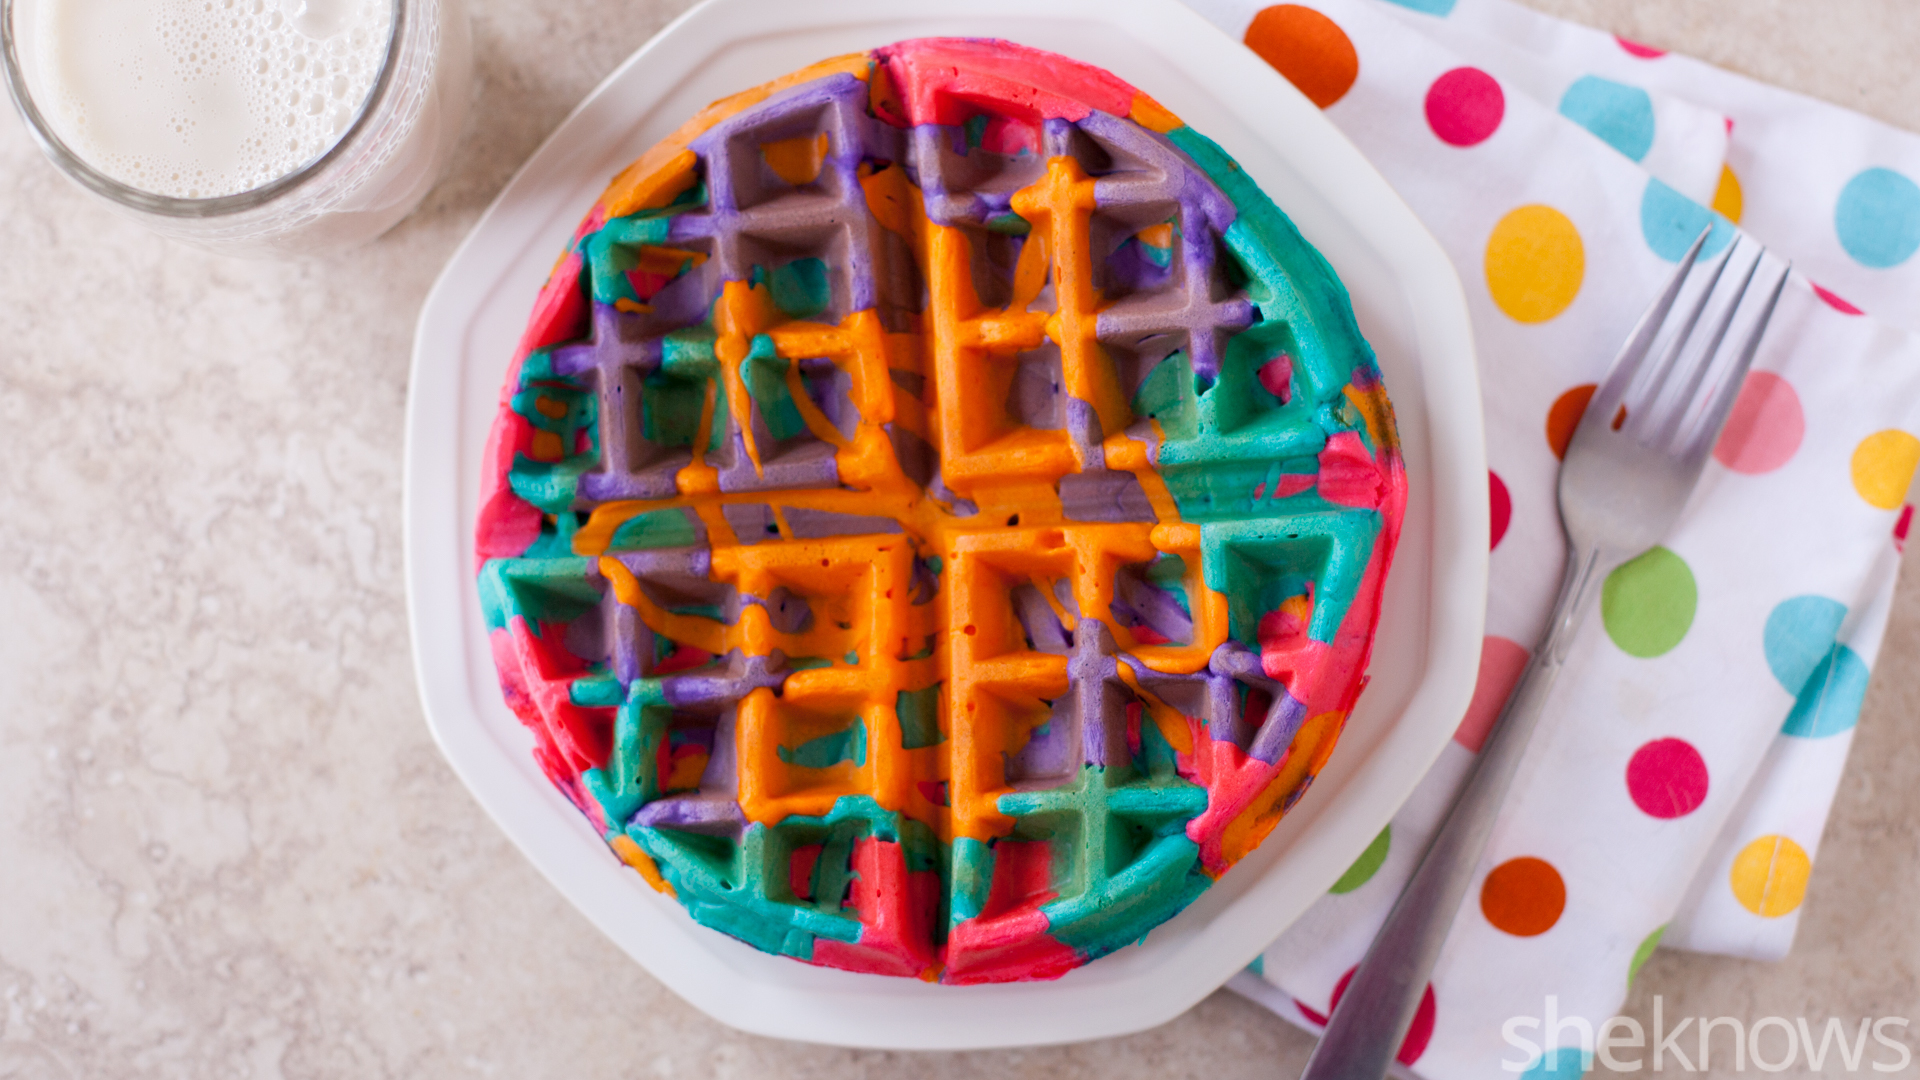 These Simple Diy Colorful Tie Dye Waffles Will Make Your